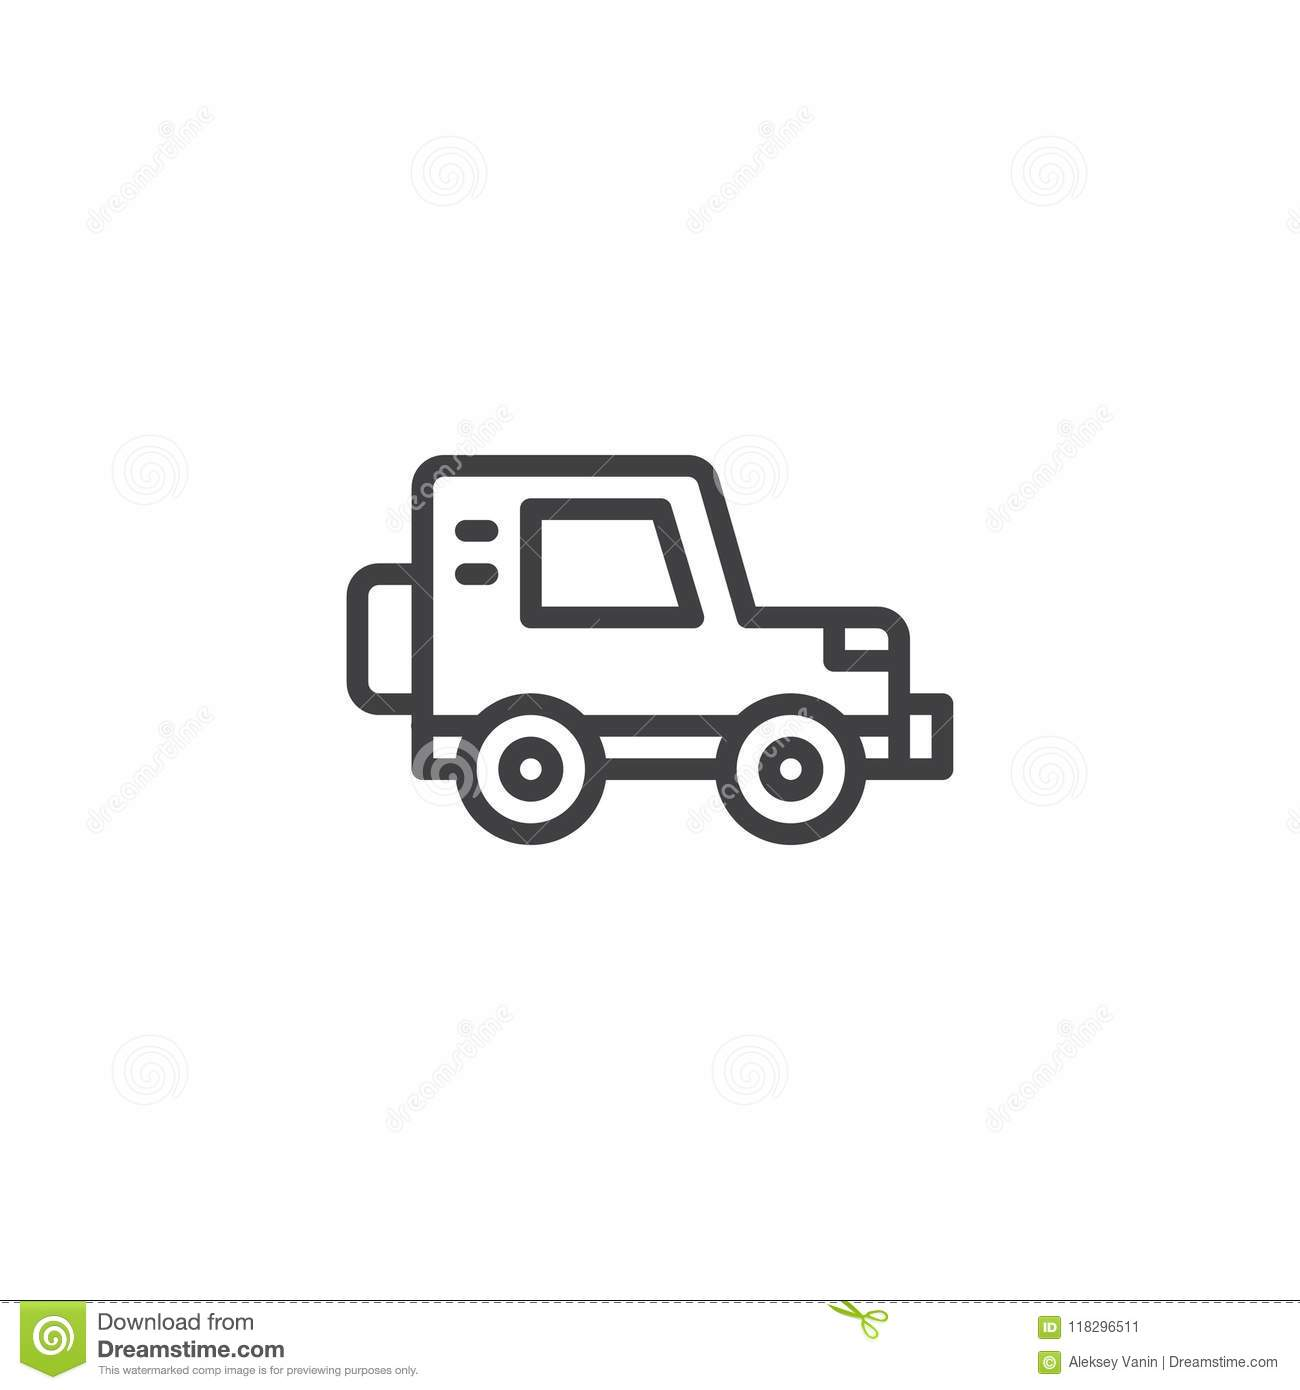 Jeep car outline icon stock vector. Illustration of